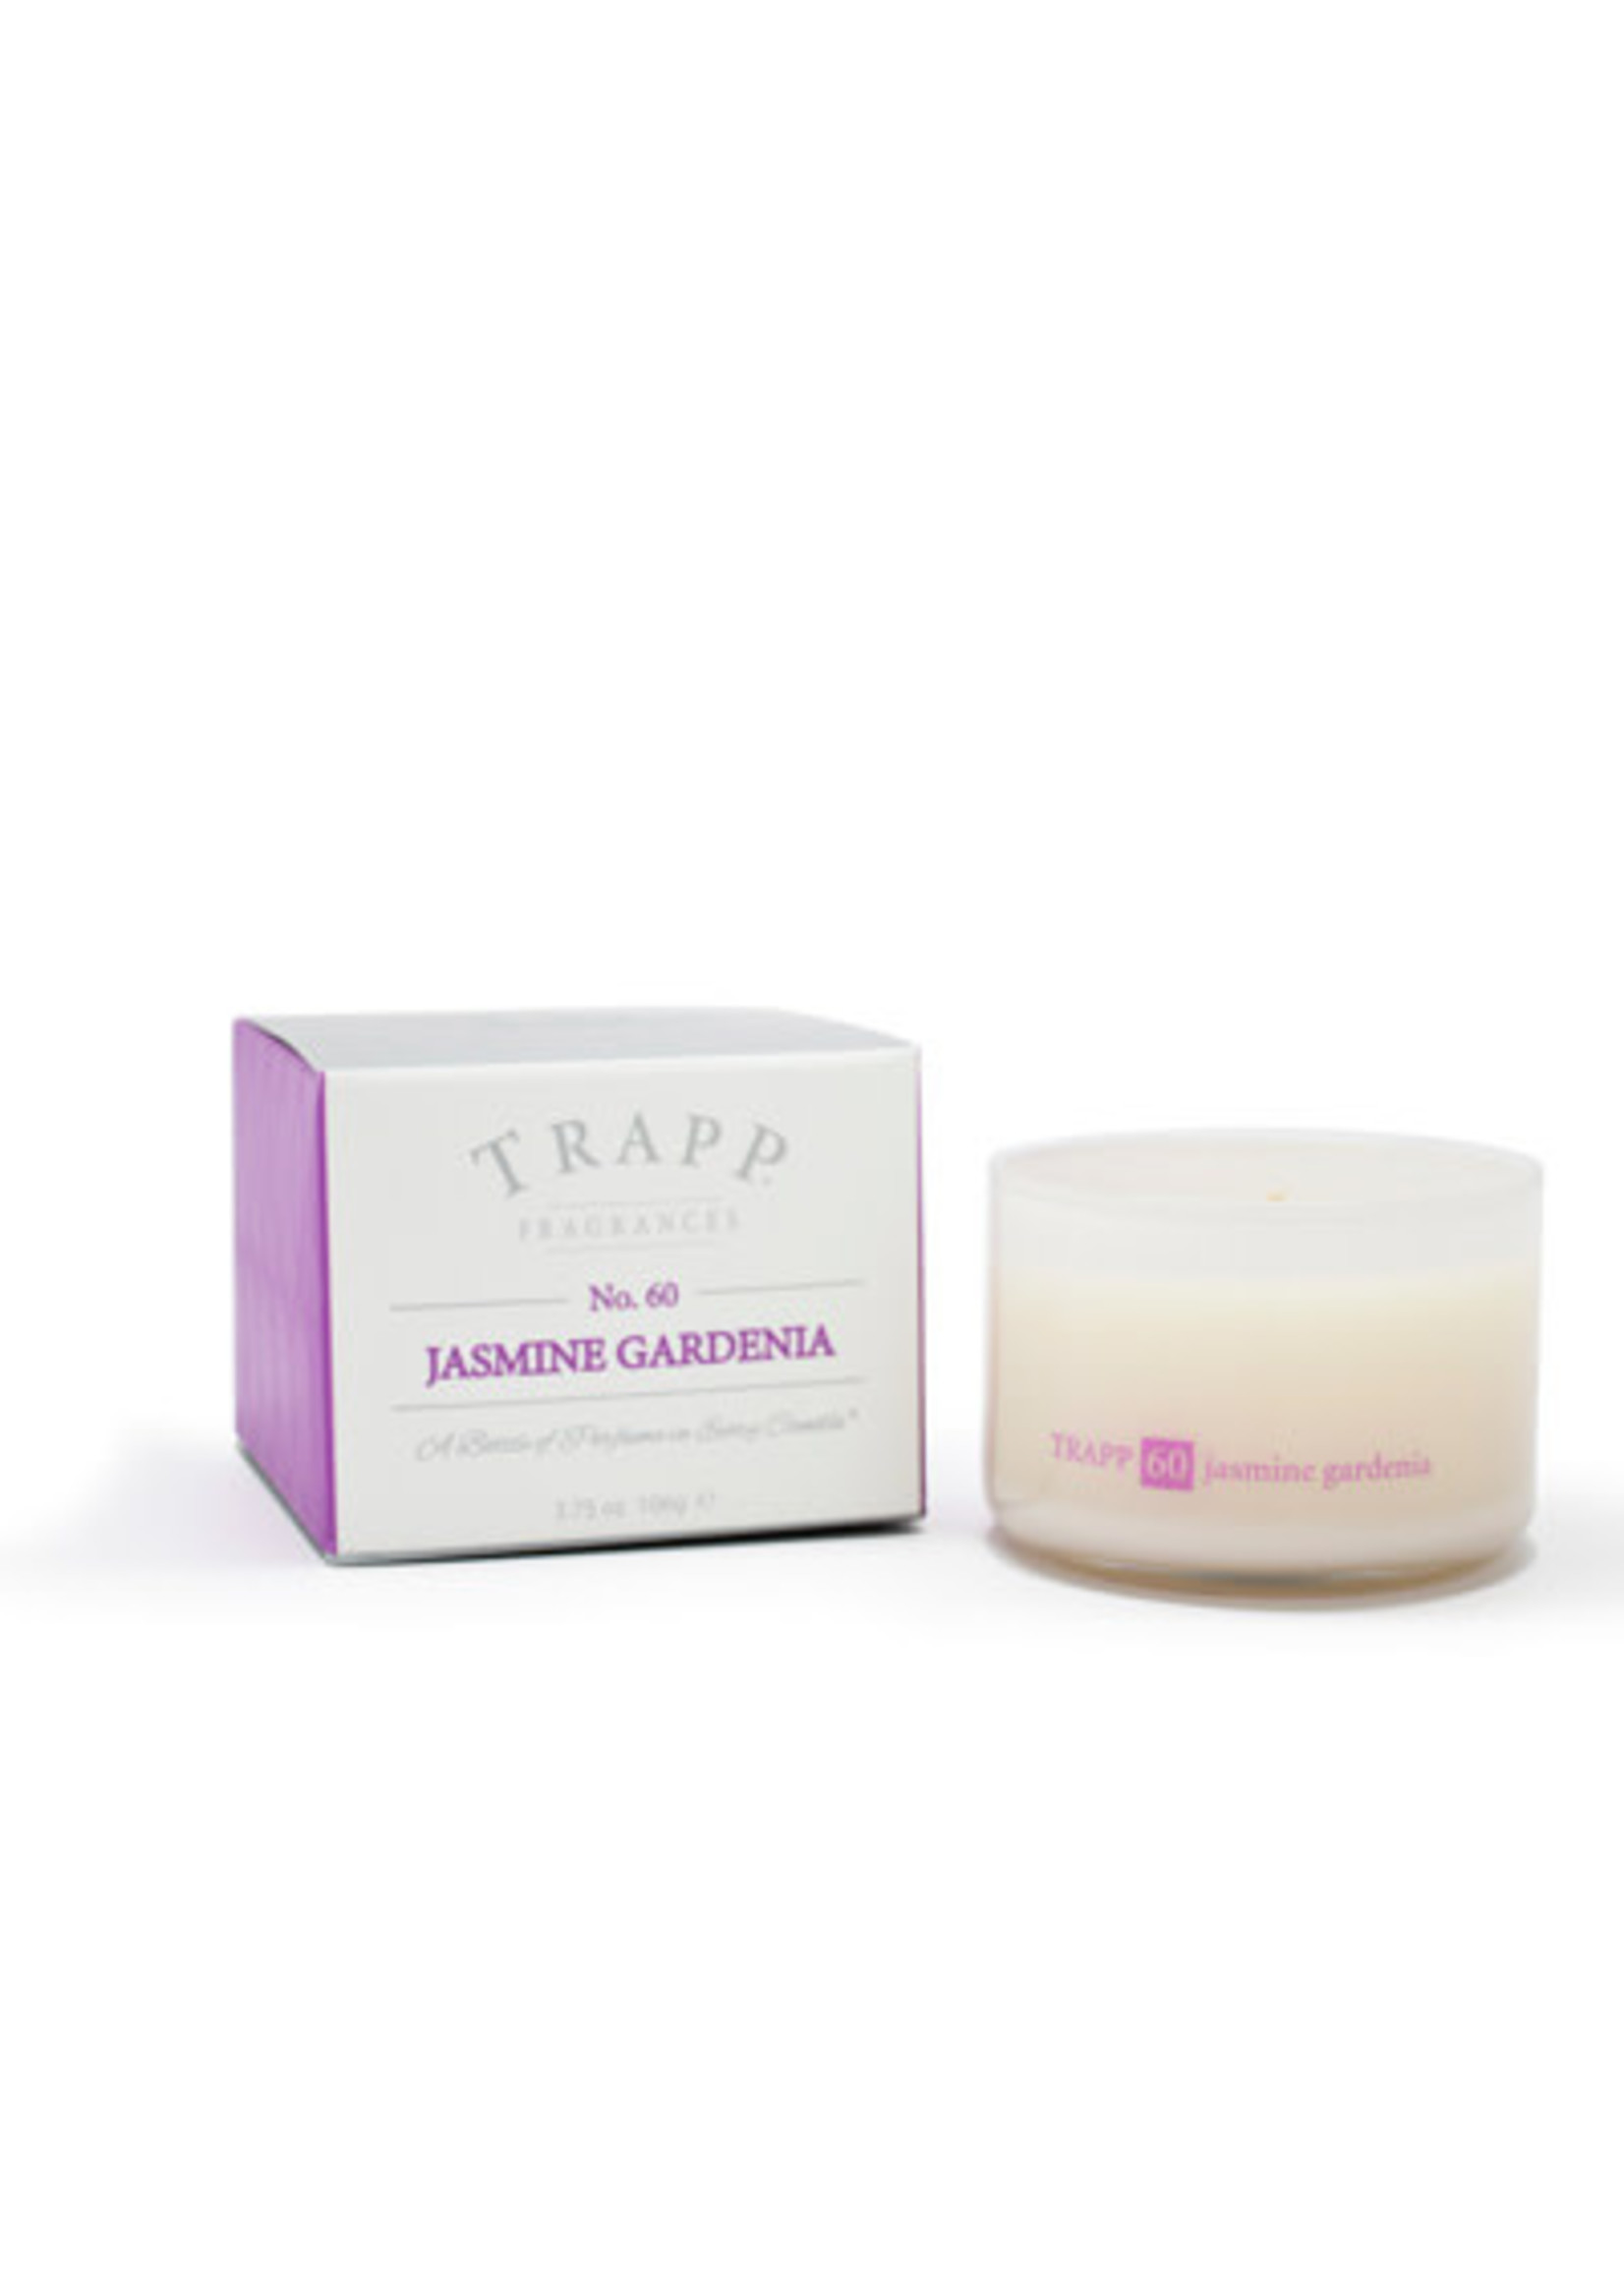 Trapp Candles Ambiance Collection - No. 60 Jasmine Gardenia - 3.75 oz. Poured Candle